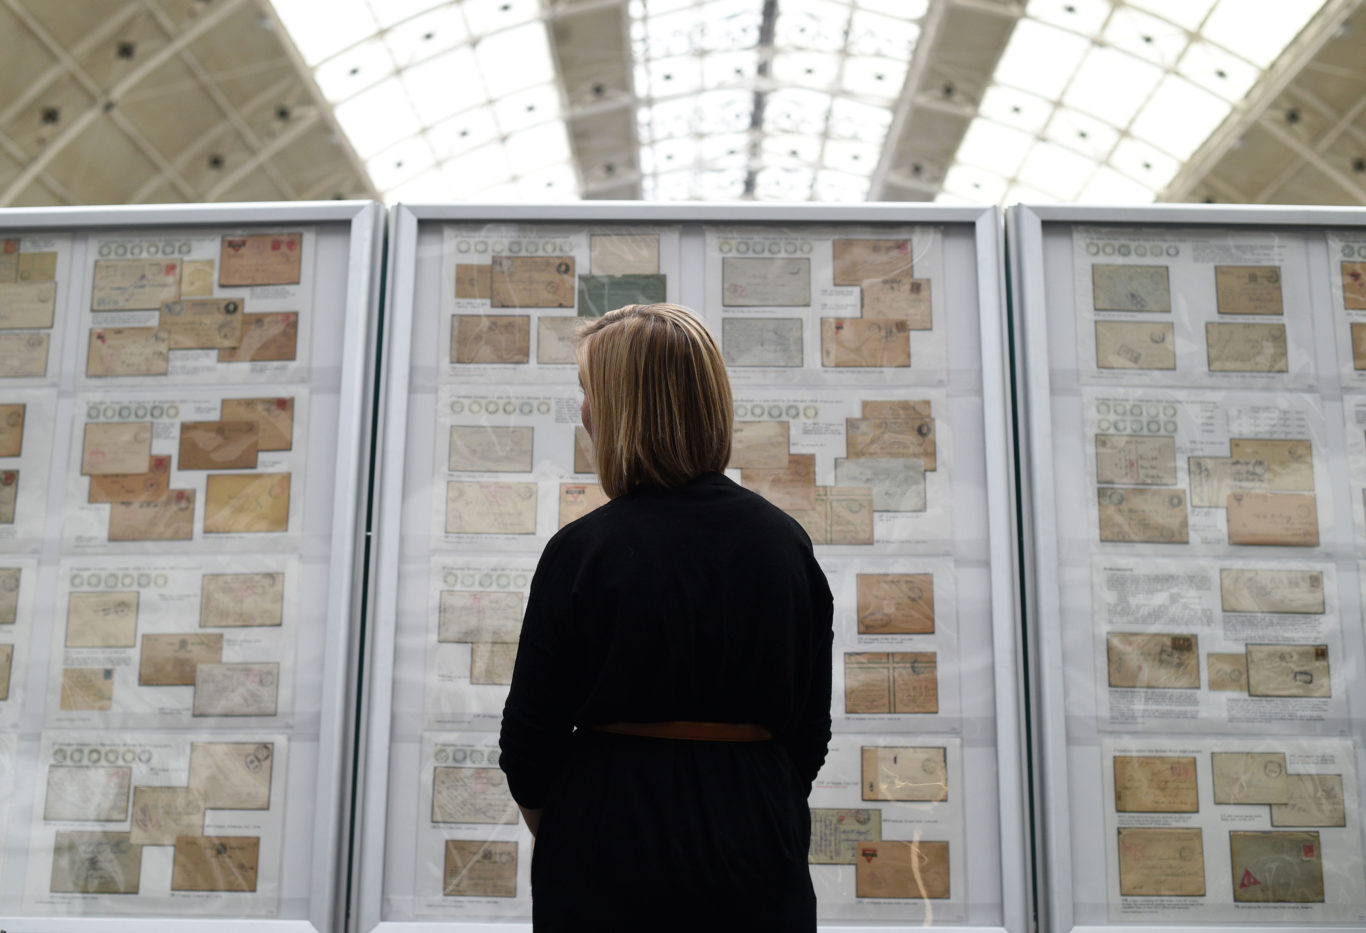 A visitor looks at a collection of envelopes and stamps during the Stampex philatelic exhibition (Kirsty O'Connor/PA)